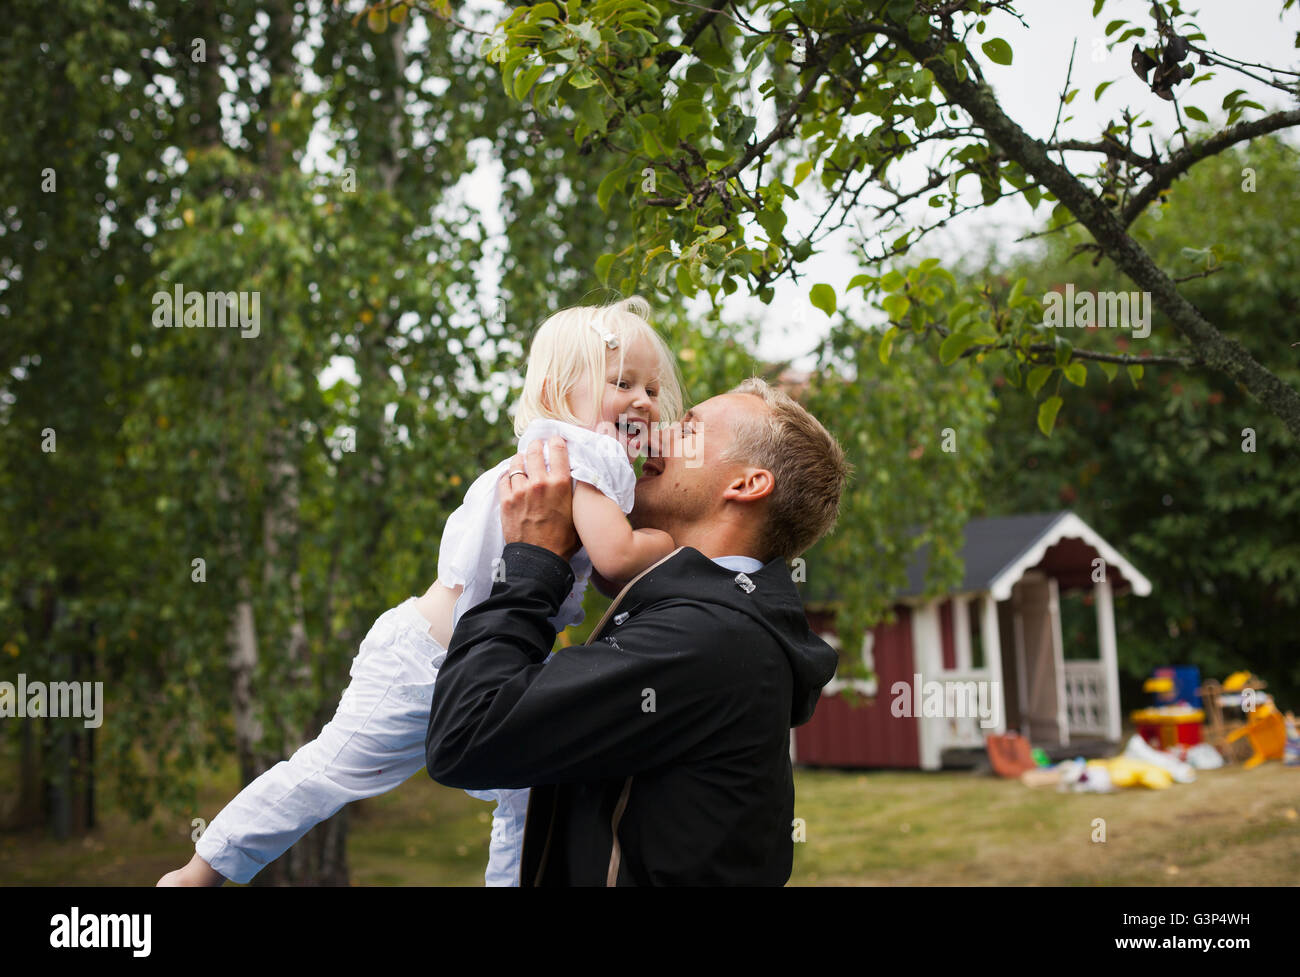 Sweden, Uppland, Father holding up daughter (4-5) - Stock Image